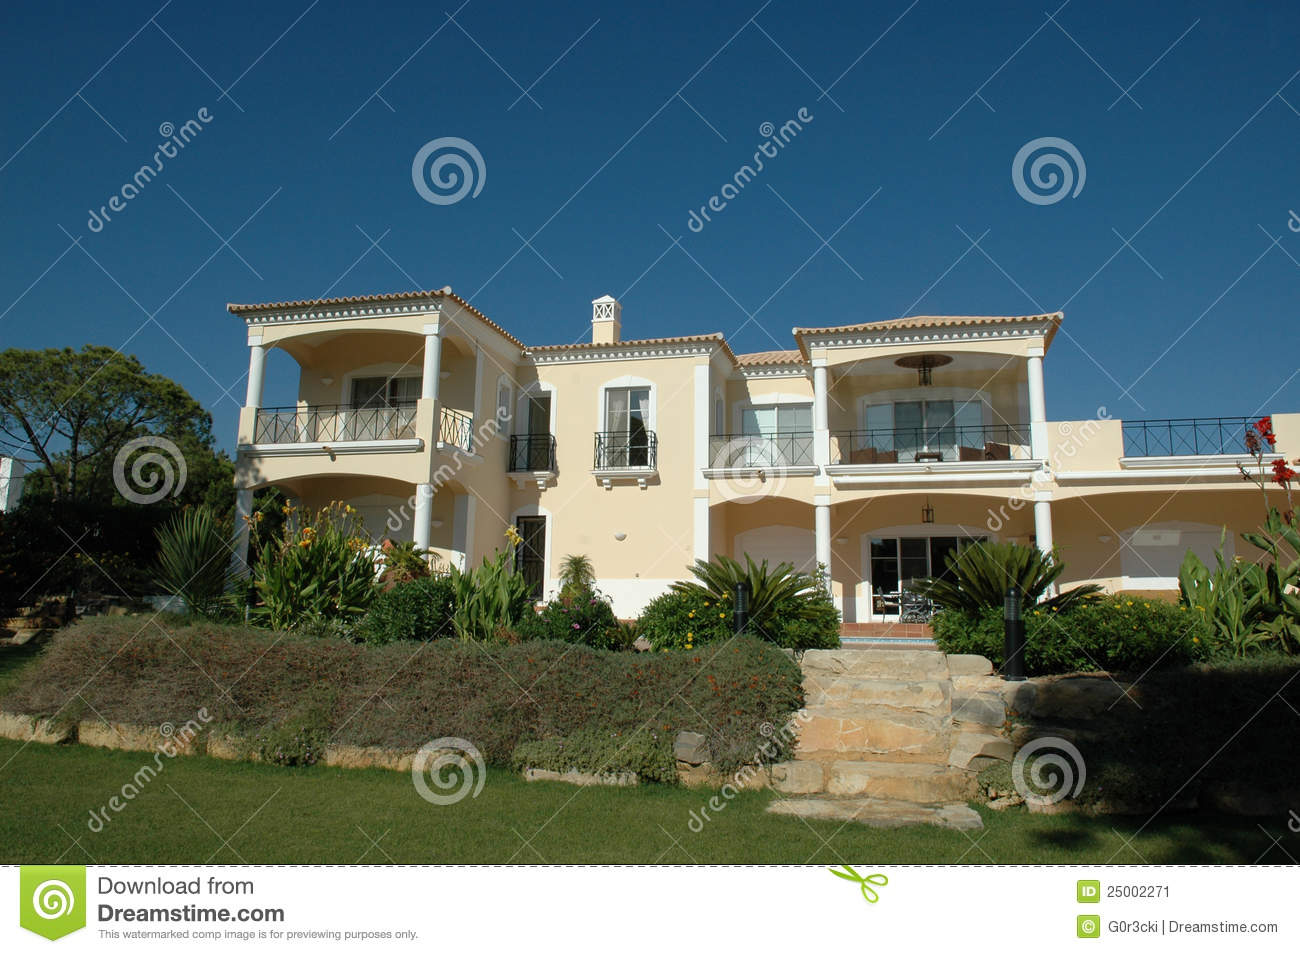 backyard of a modern house with a big and beautiful garden and a